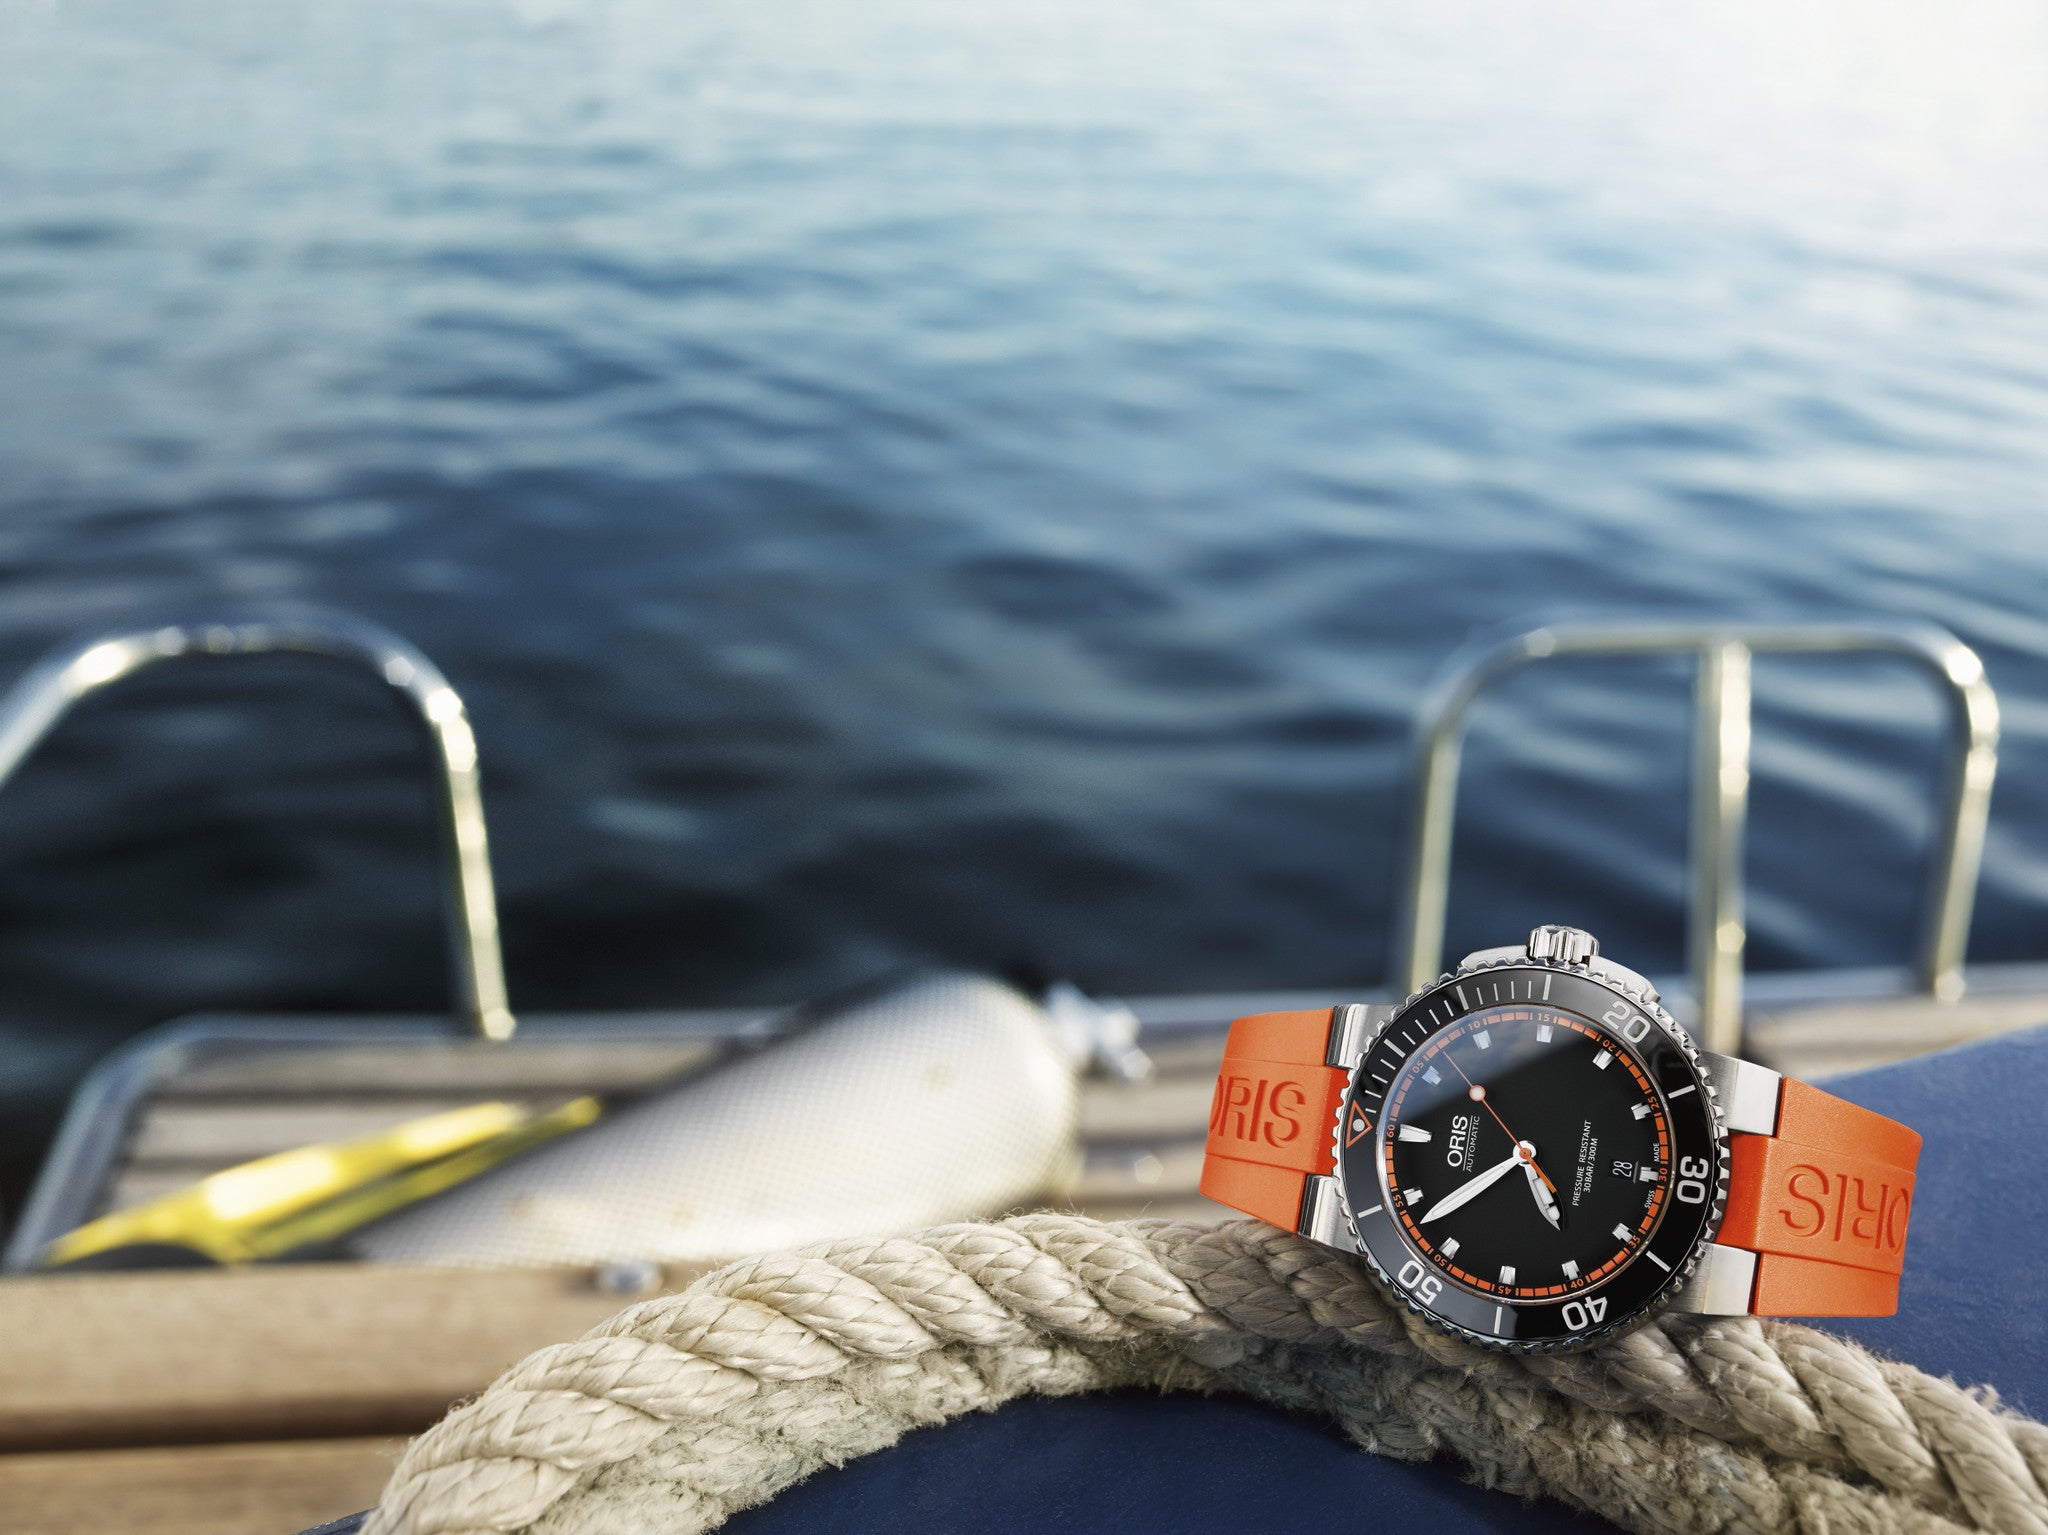 Why You Should Buy an Oris Watch.